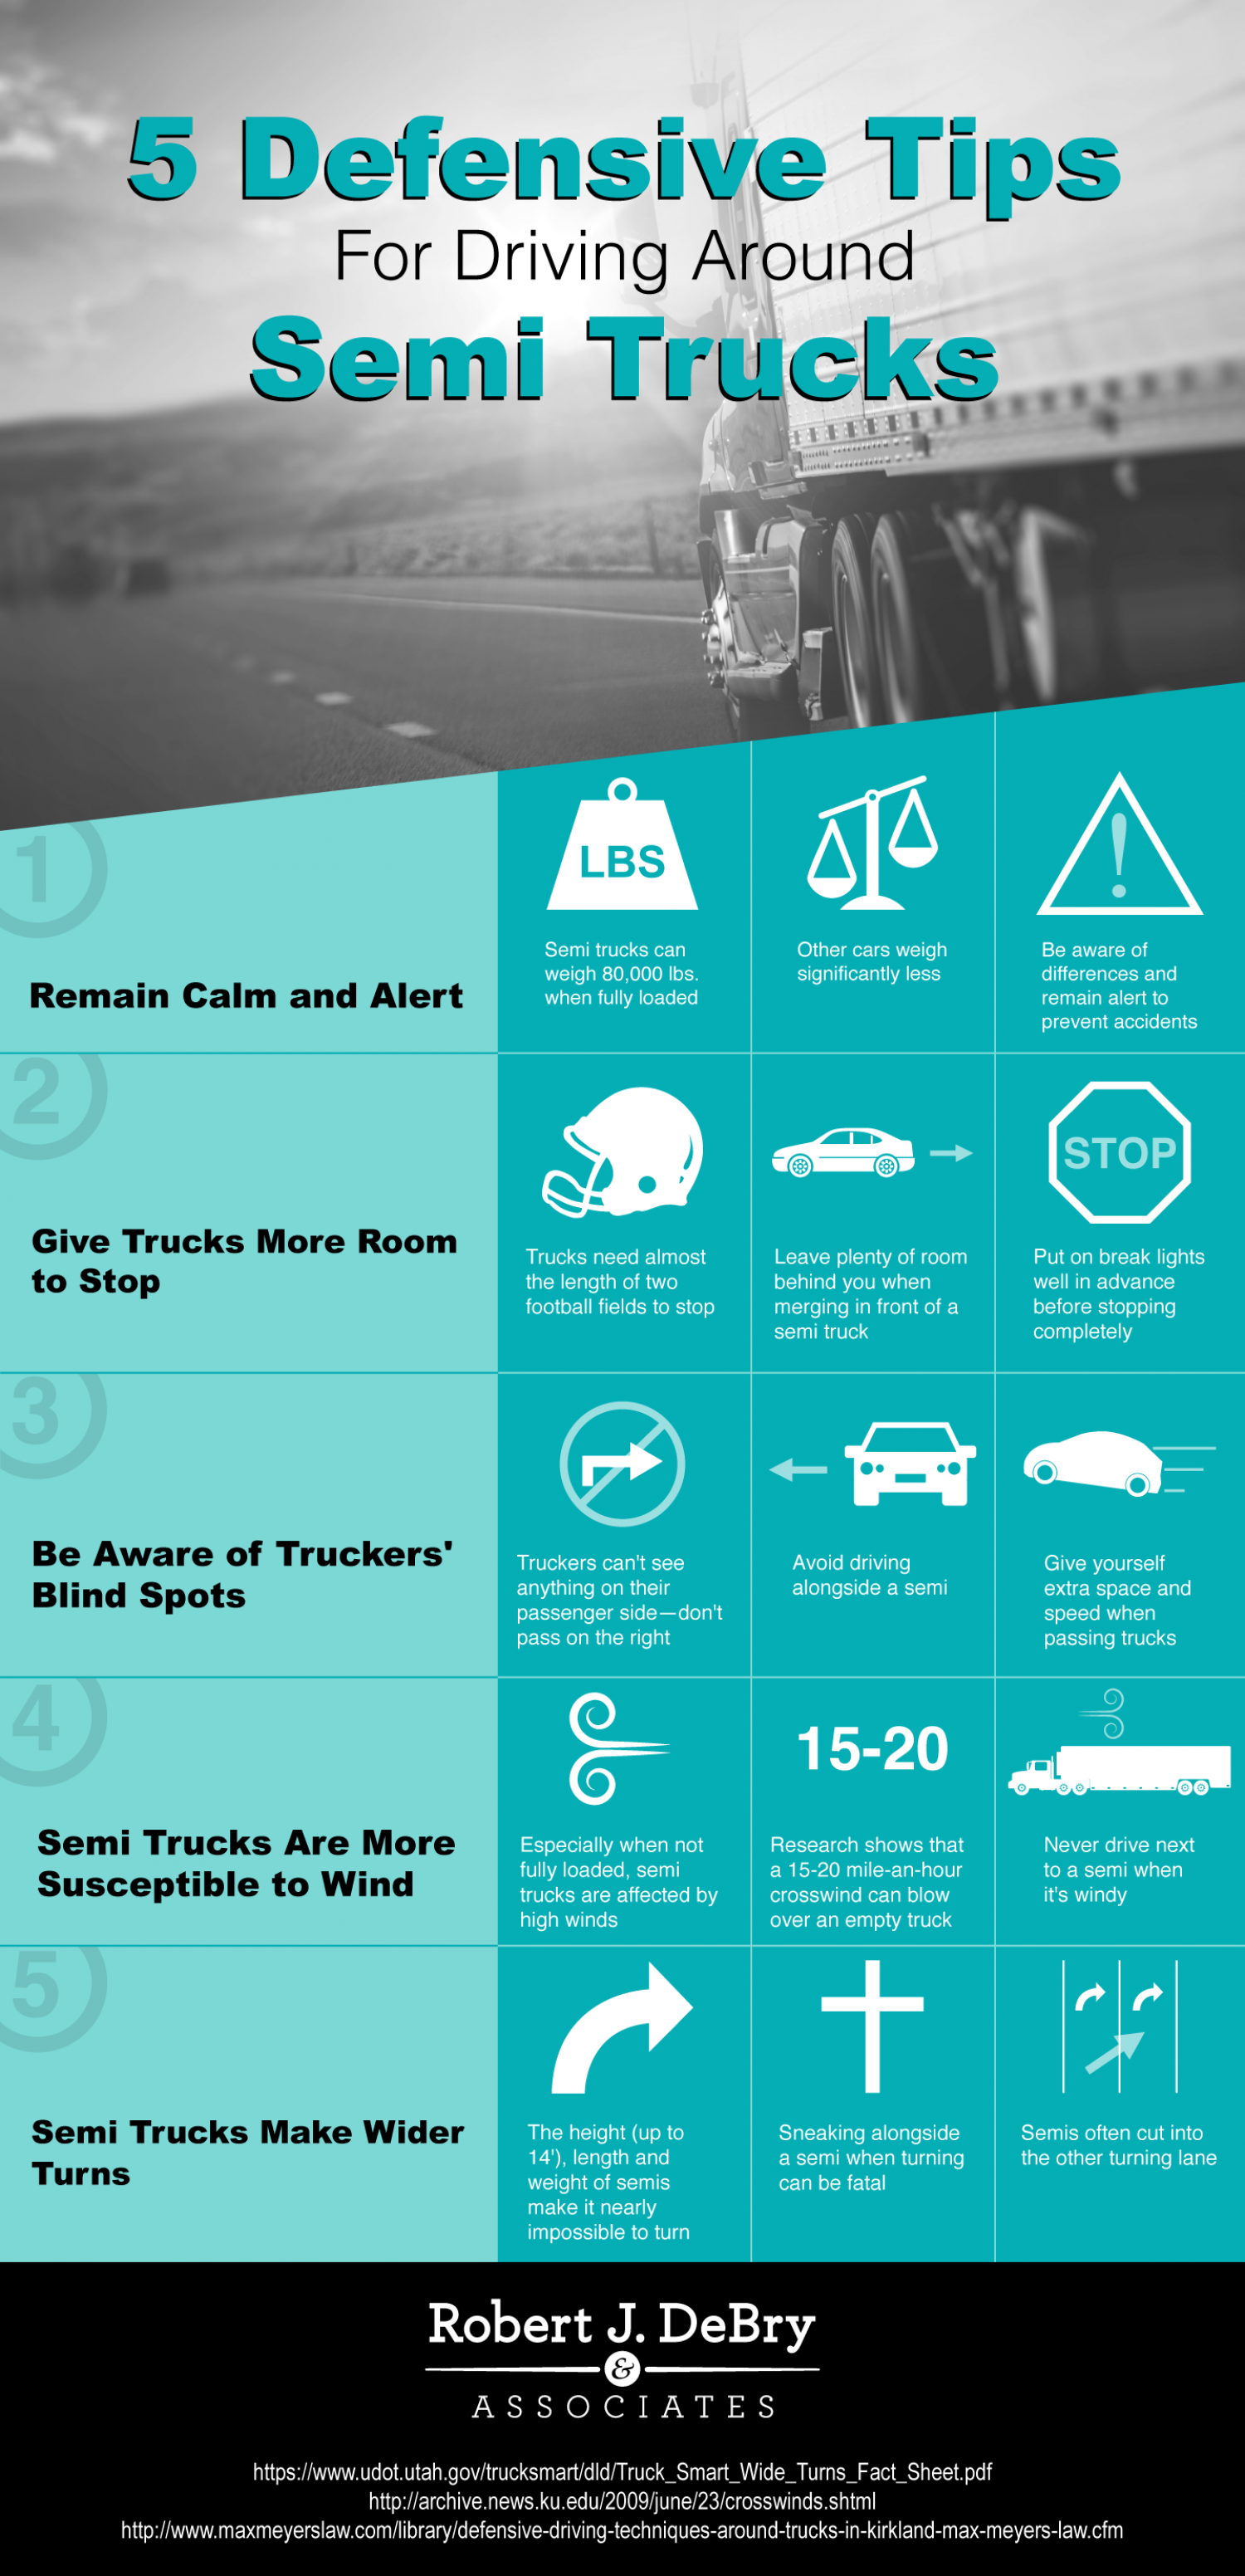 Save Your Own Life: Drive Defensively Around Trucks Infographic